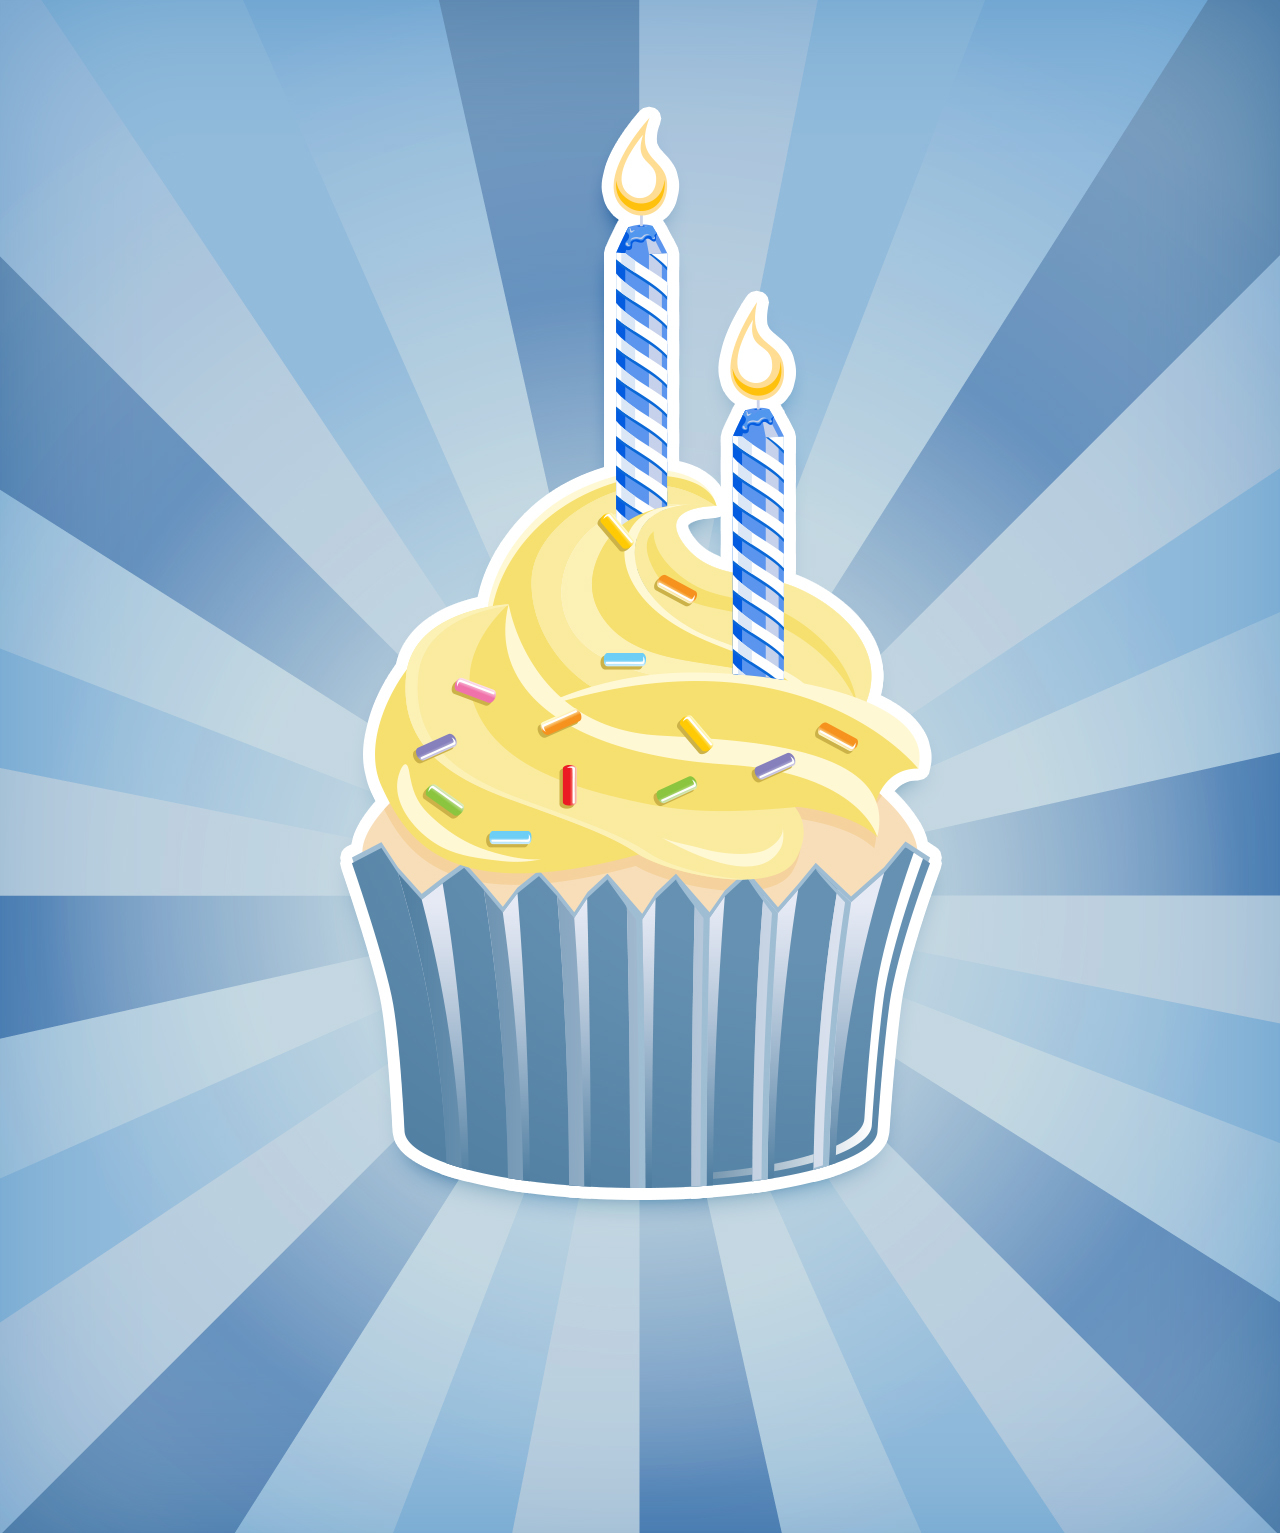 Damien Carter Photography turned 4 today!